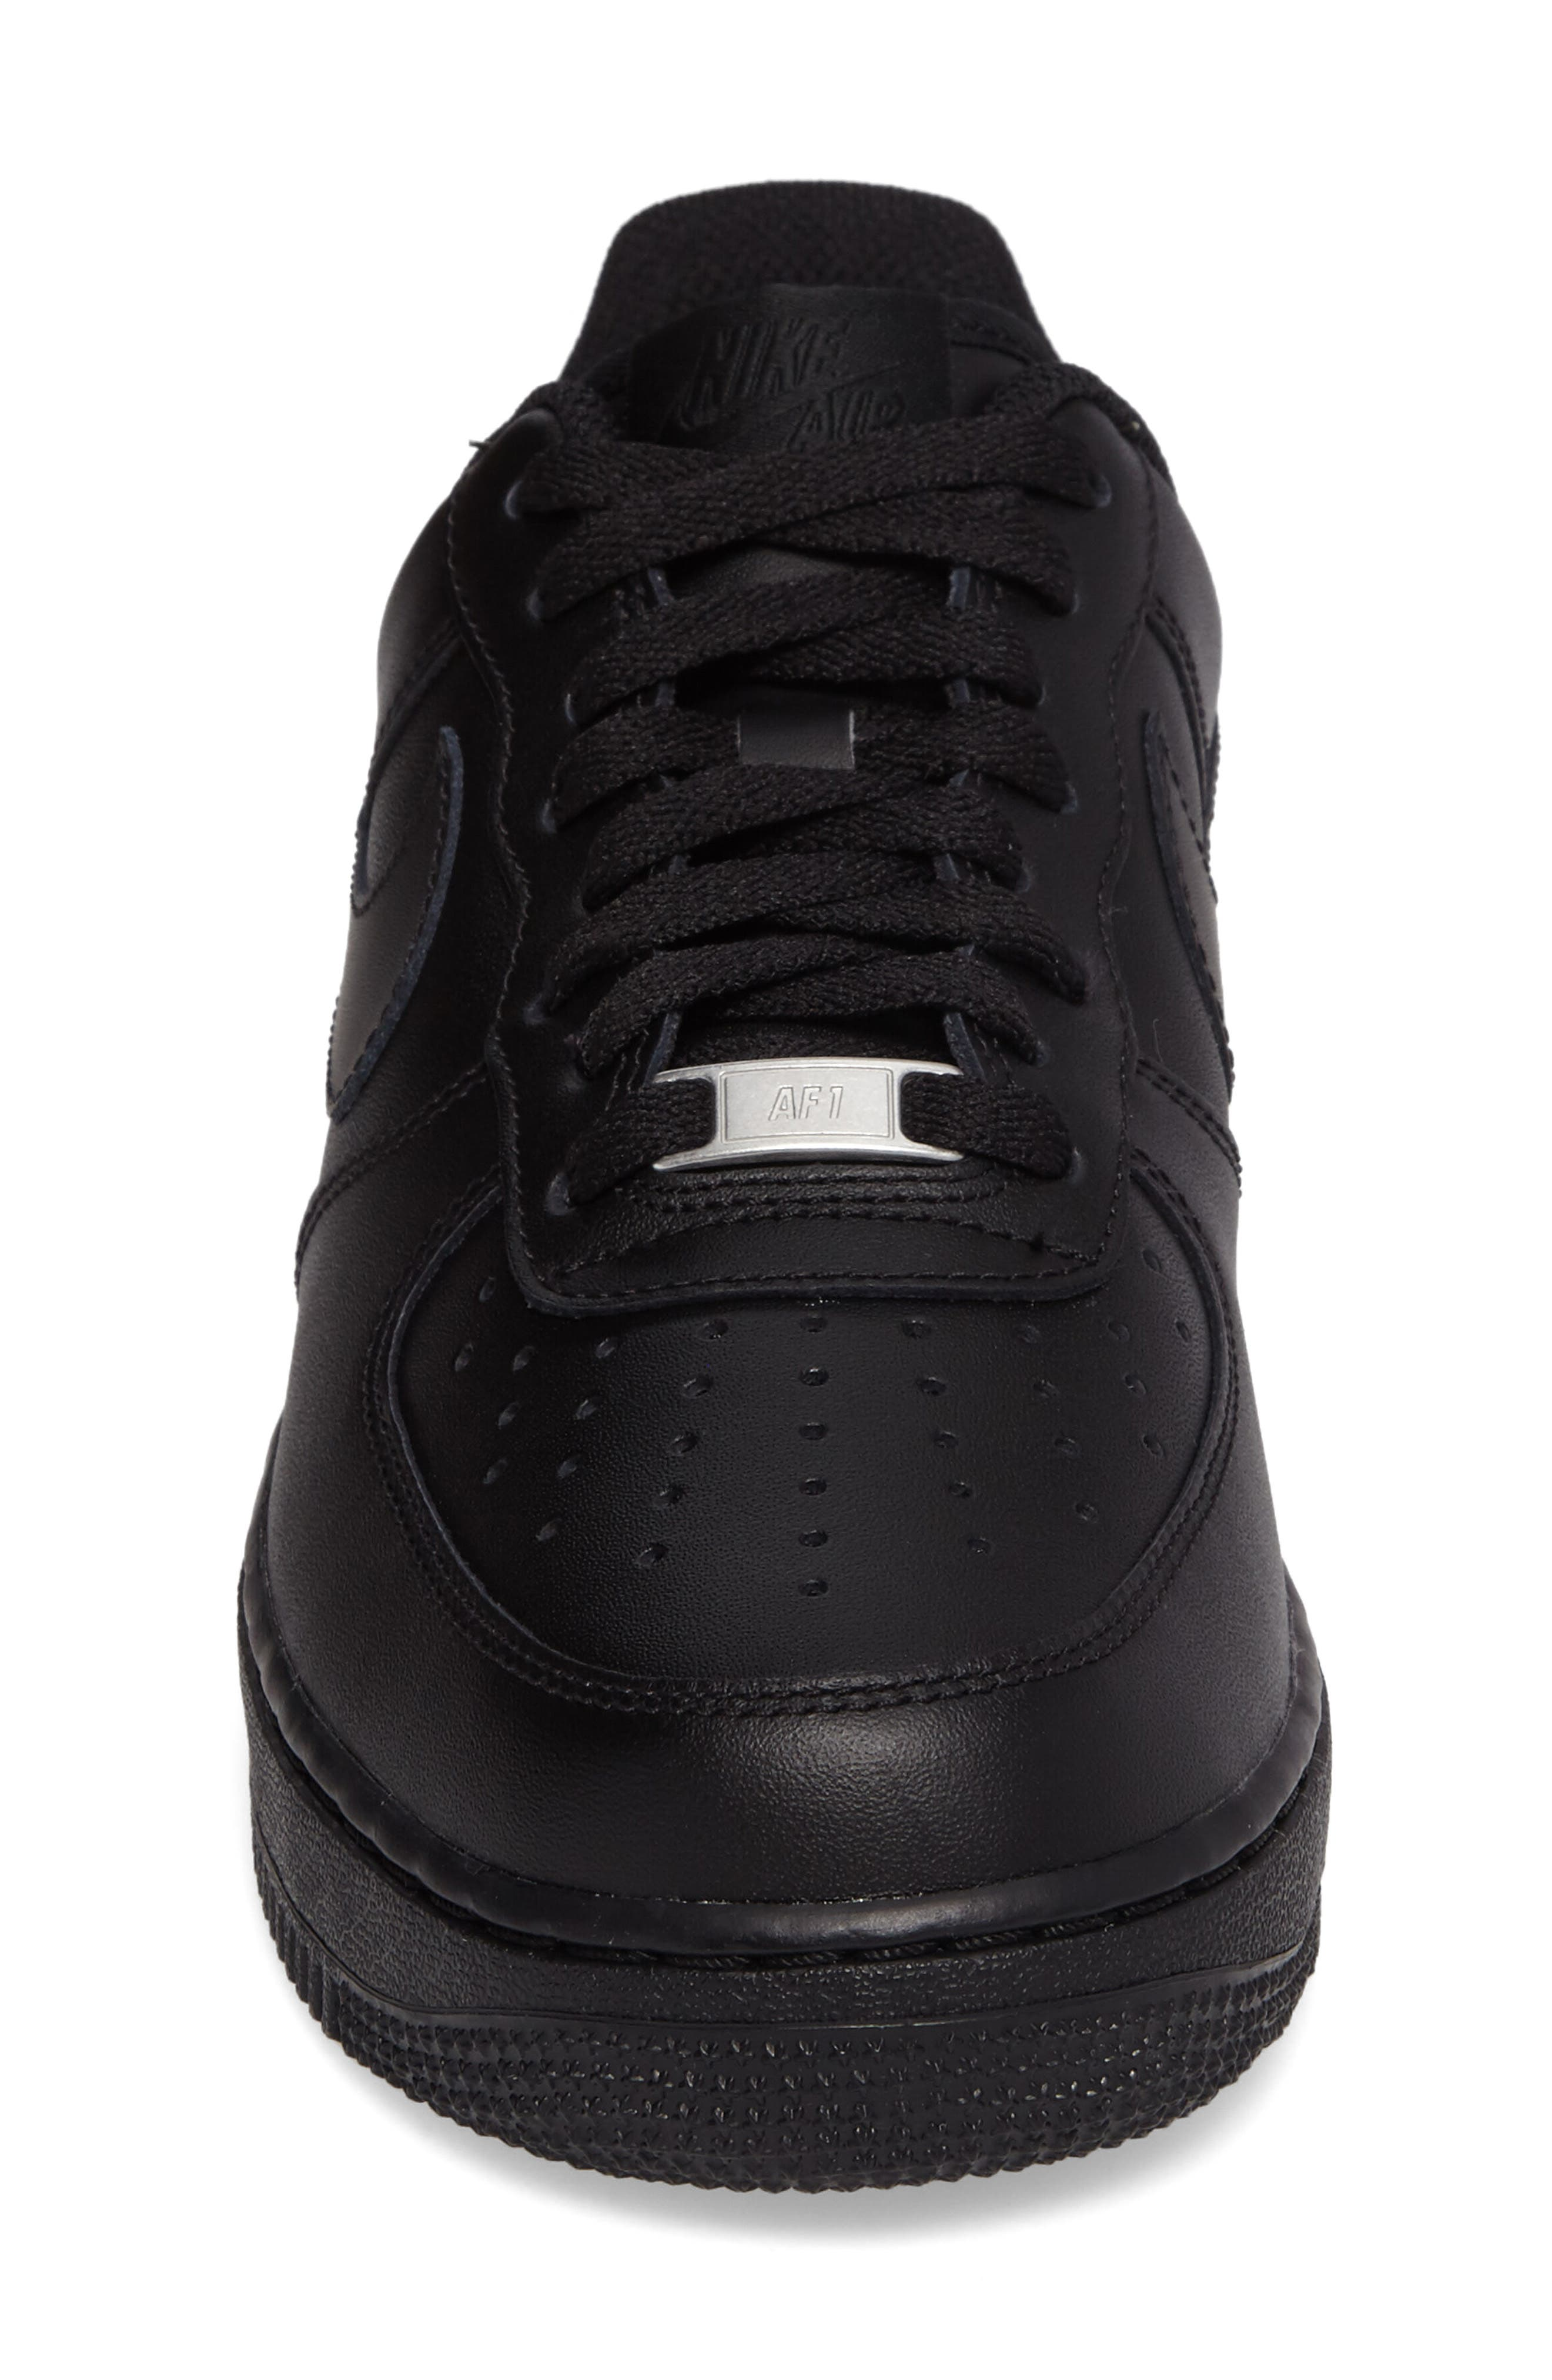 Air Force 1 '07 Sneaker,                             Alternate thumbnail 4, color,                             Black/ Black